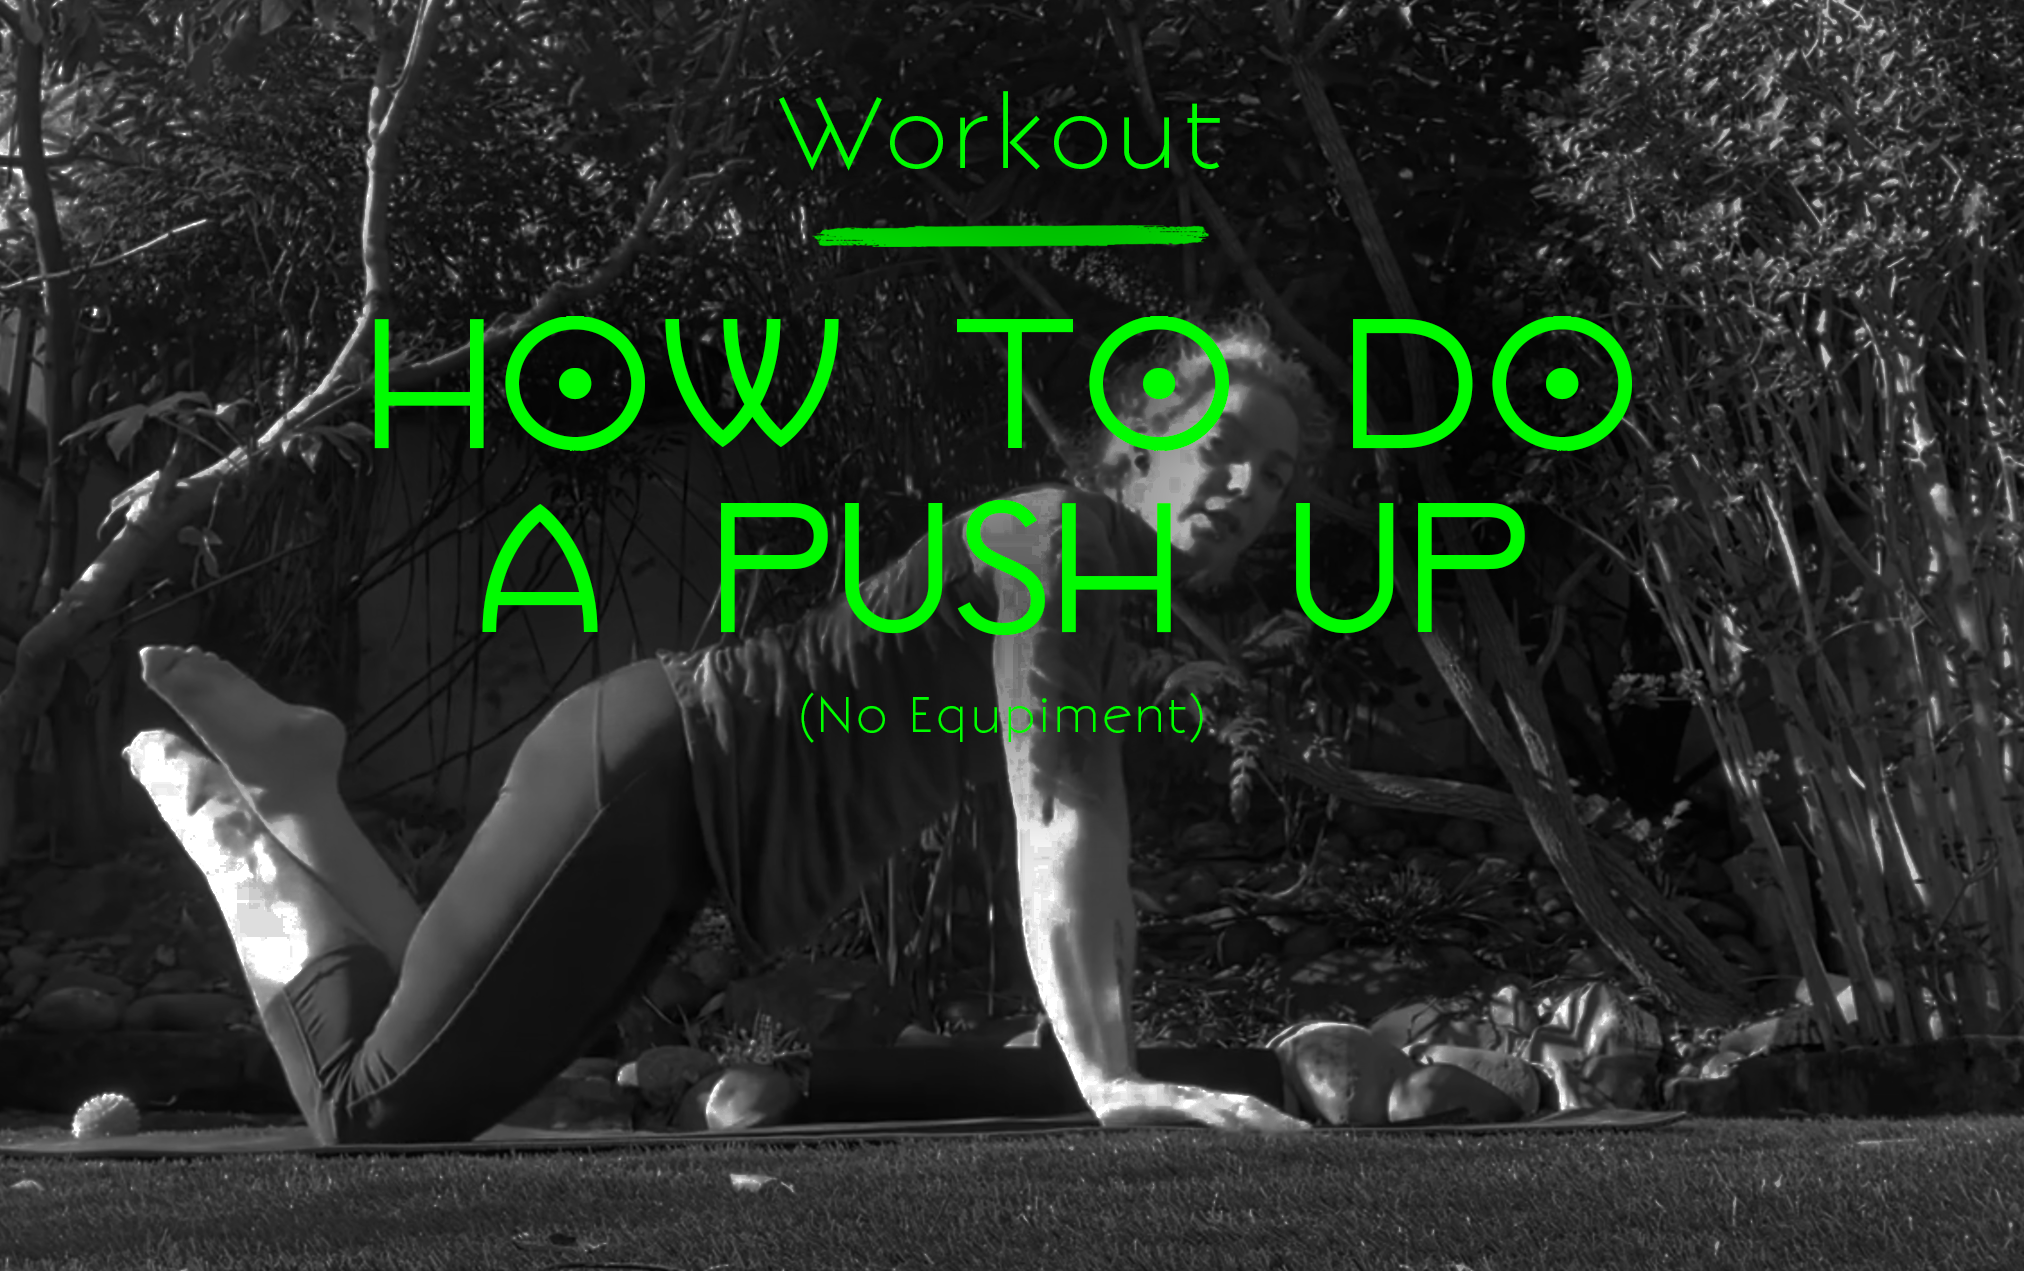 howto-pushup